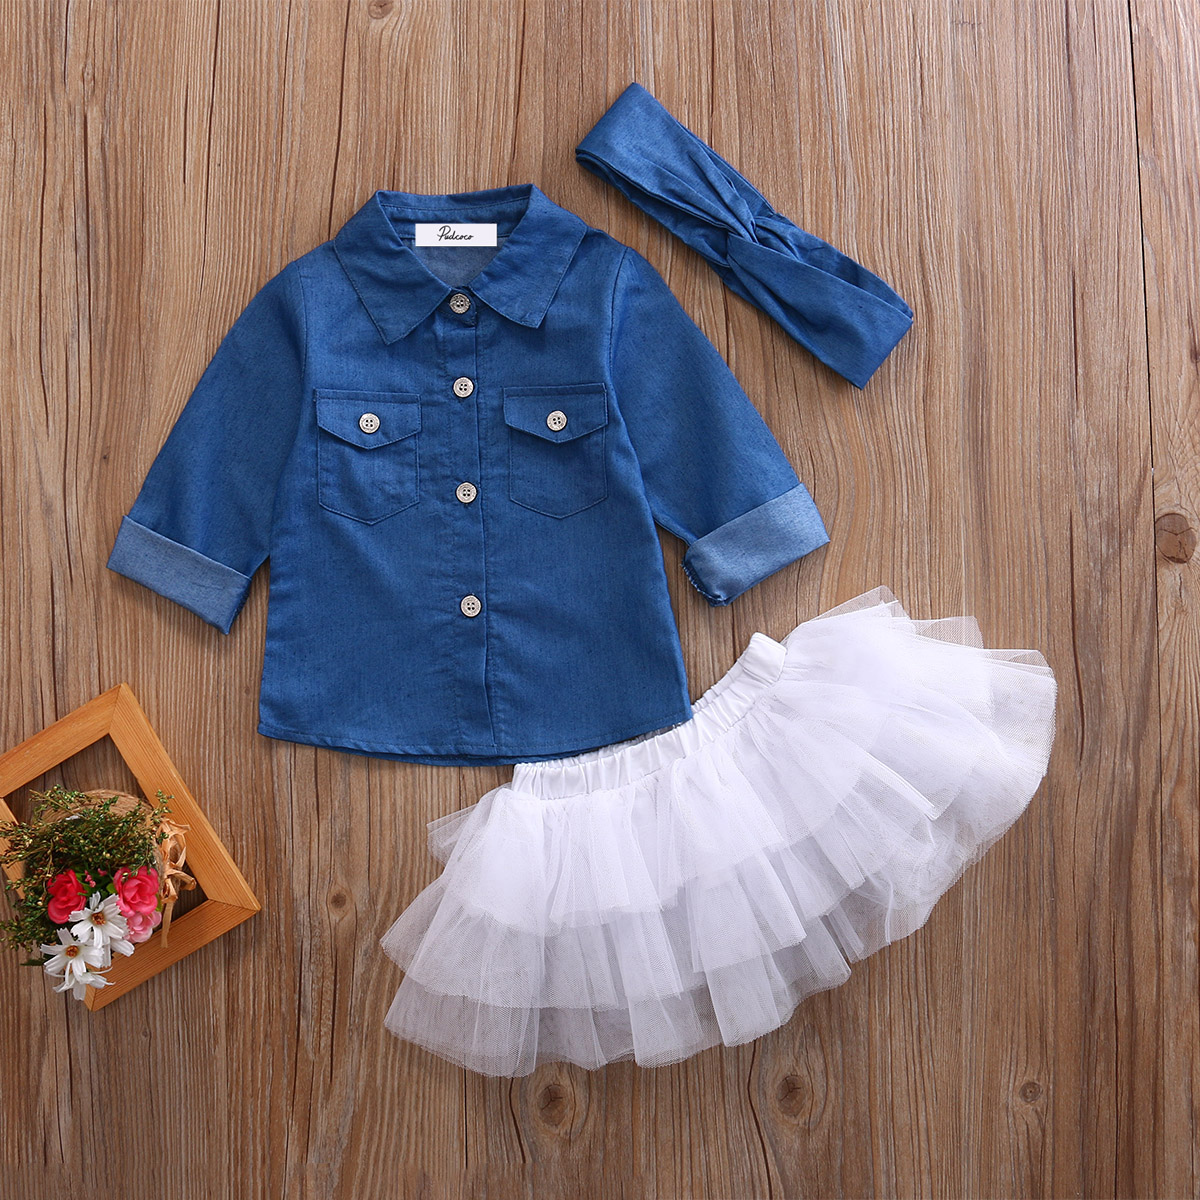 Kids Baby Girls Denim Tops T shirt+White Tutu Skirts+Headband 3pcs Outfits Clothes Set Summer Long Sleeve Children Clothing Sets цены